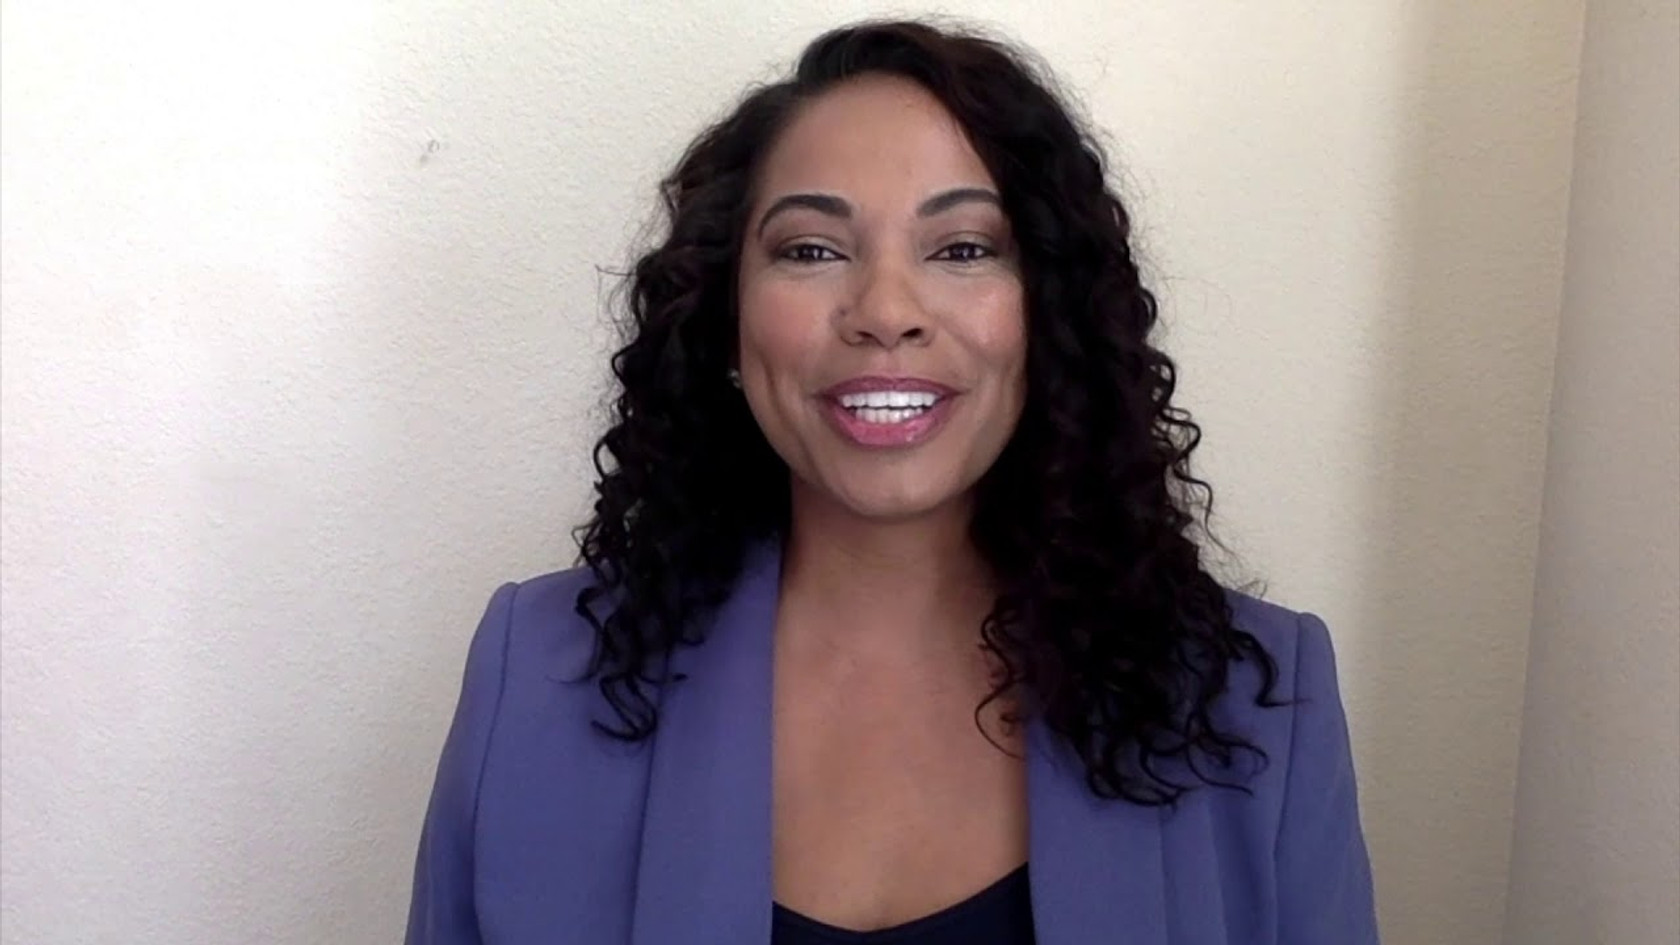 Audition Self Tape for KB Home Host